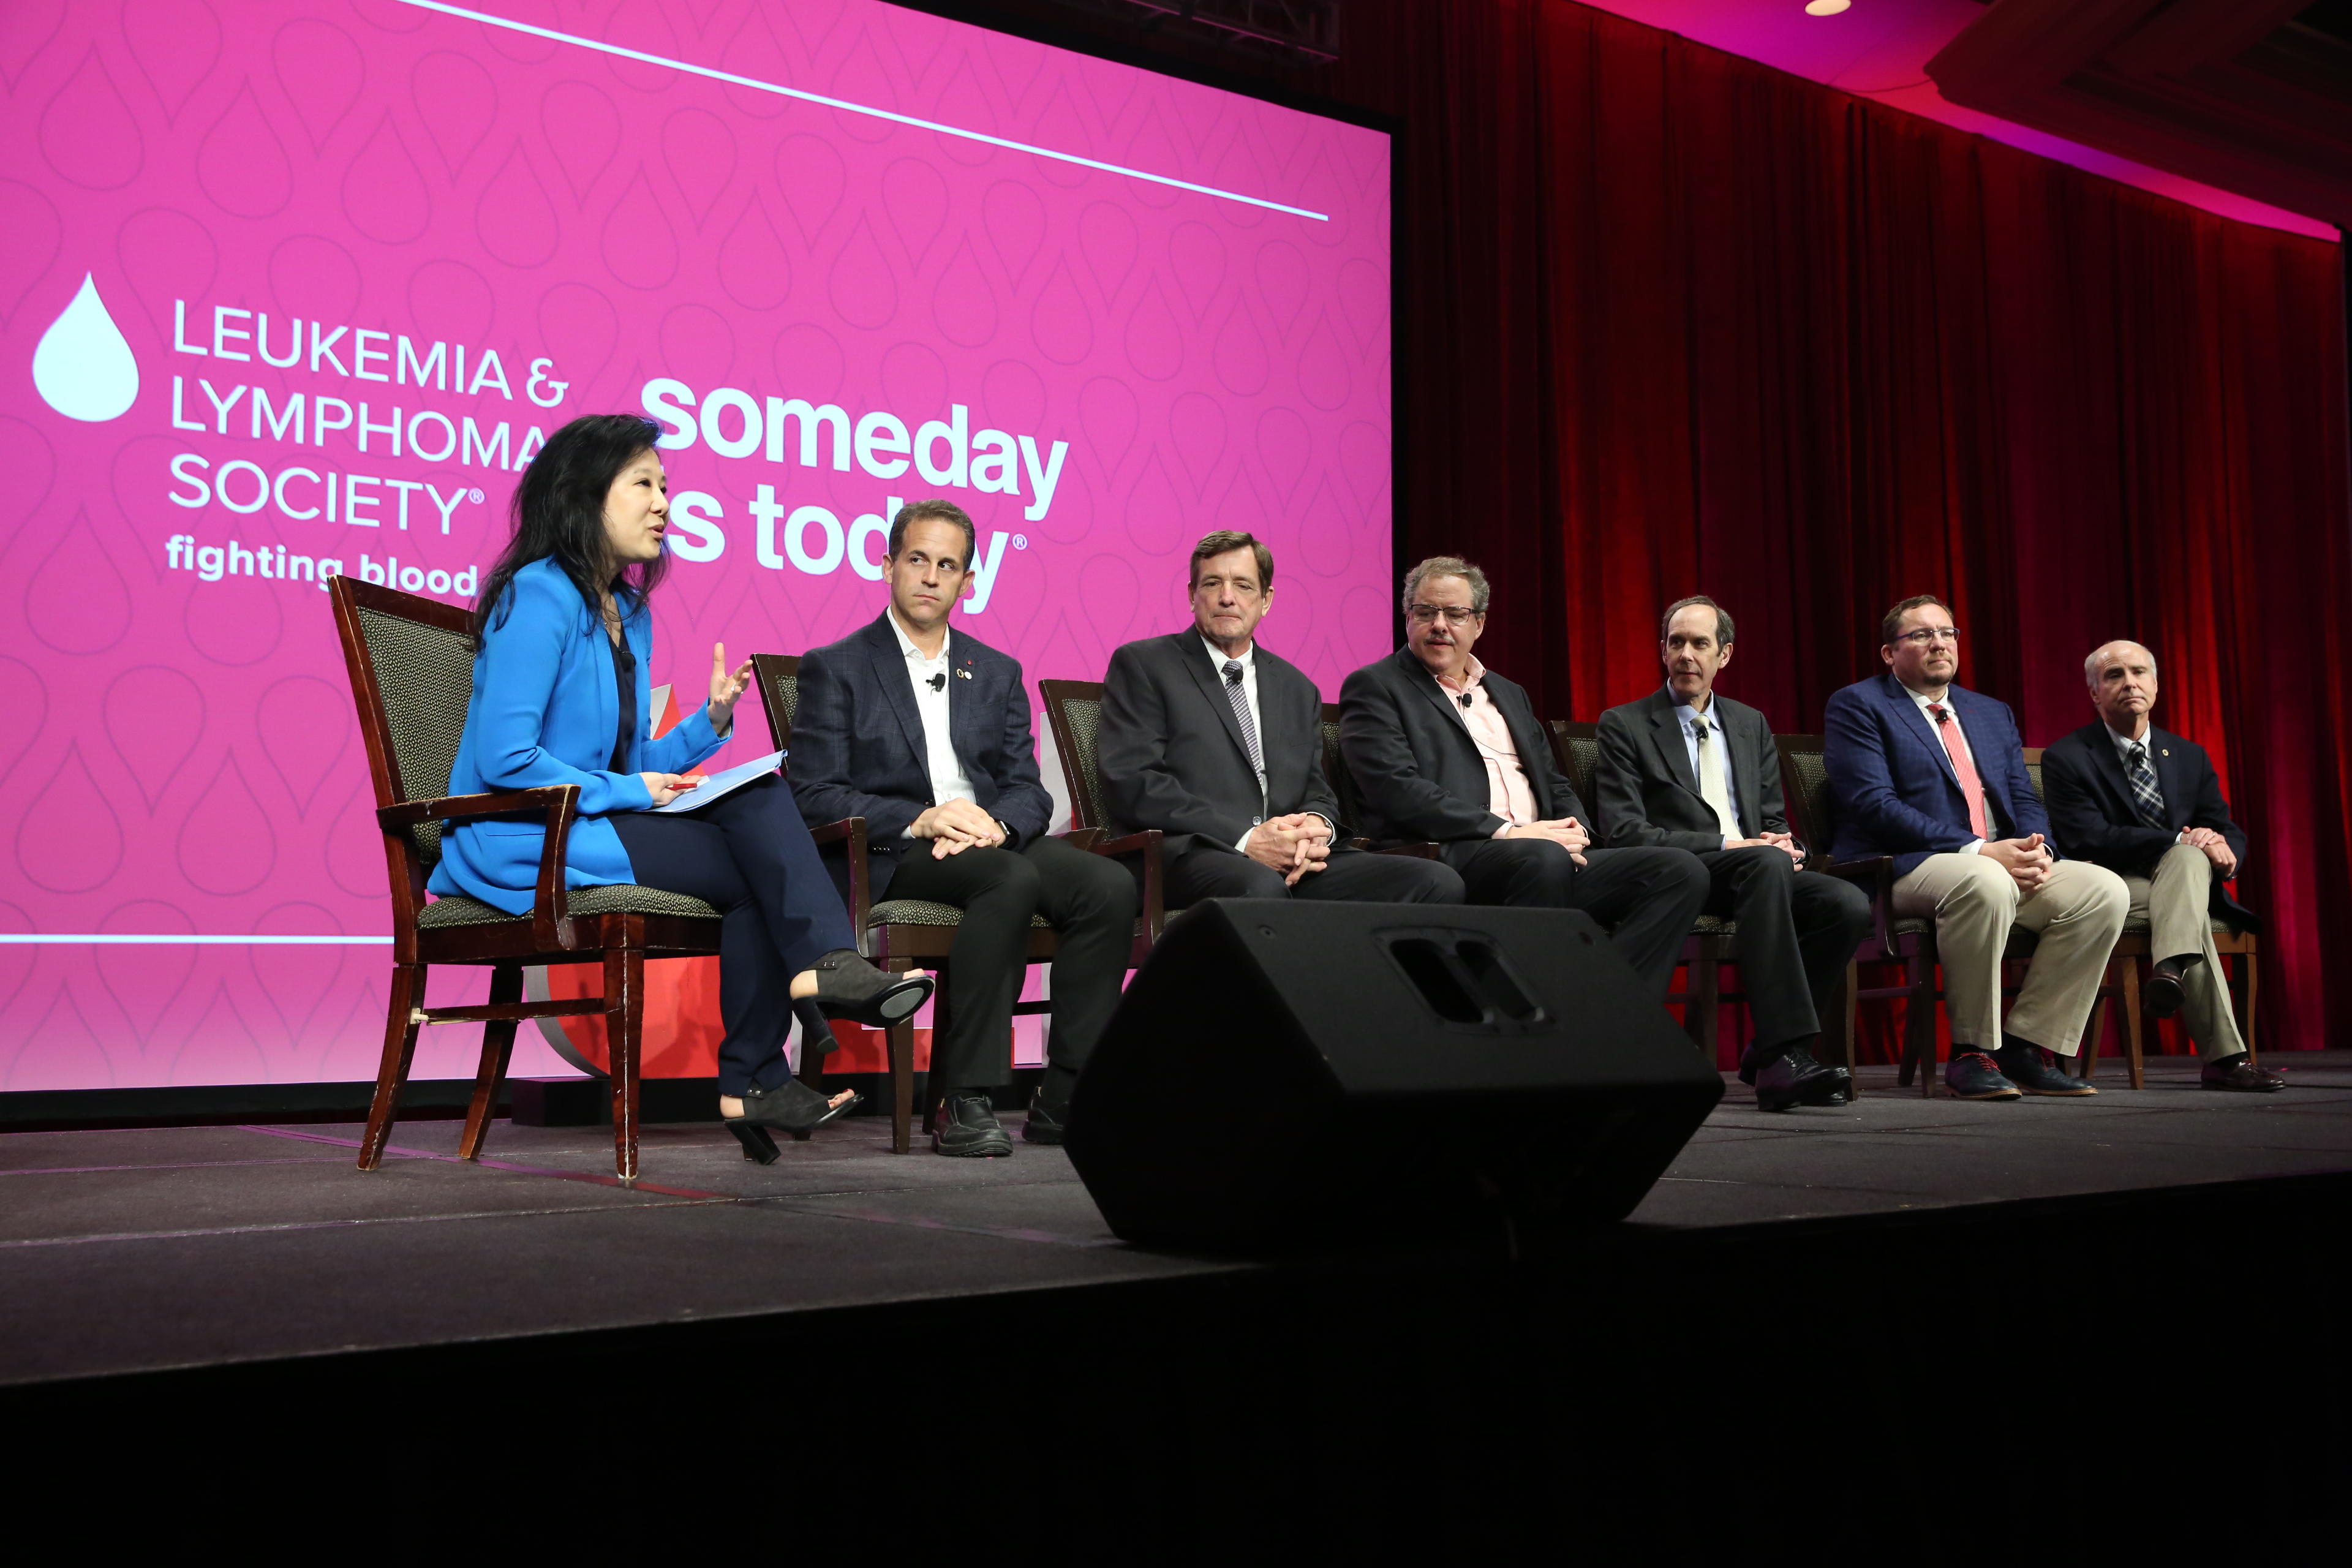 "The Leukemia & Lymphoma Society's ""Leading the Way to Cancer Cures"" panel on immunotherapy and precision medicine. (From left to right: Alice Park, TIME; Ross L. Levine, M.D., Memorial Sloan Kettering Cancer Center; Douglas Olson, Chronic Lymphocytic Leukemia Survivor; Stephan Grupp, M.D., Ph.D., Children's Hospital of Philadelphia; Brian Druker, M.D., OHSU Knight Cancer Institute;  Renier Brentjens, M.D., Ph.D., Memorial Sloan Kettering Cancer Center; Kenneth Anderson, M.D., Dana-Farber Cancer Institute.)"